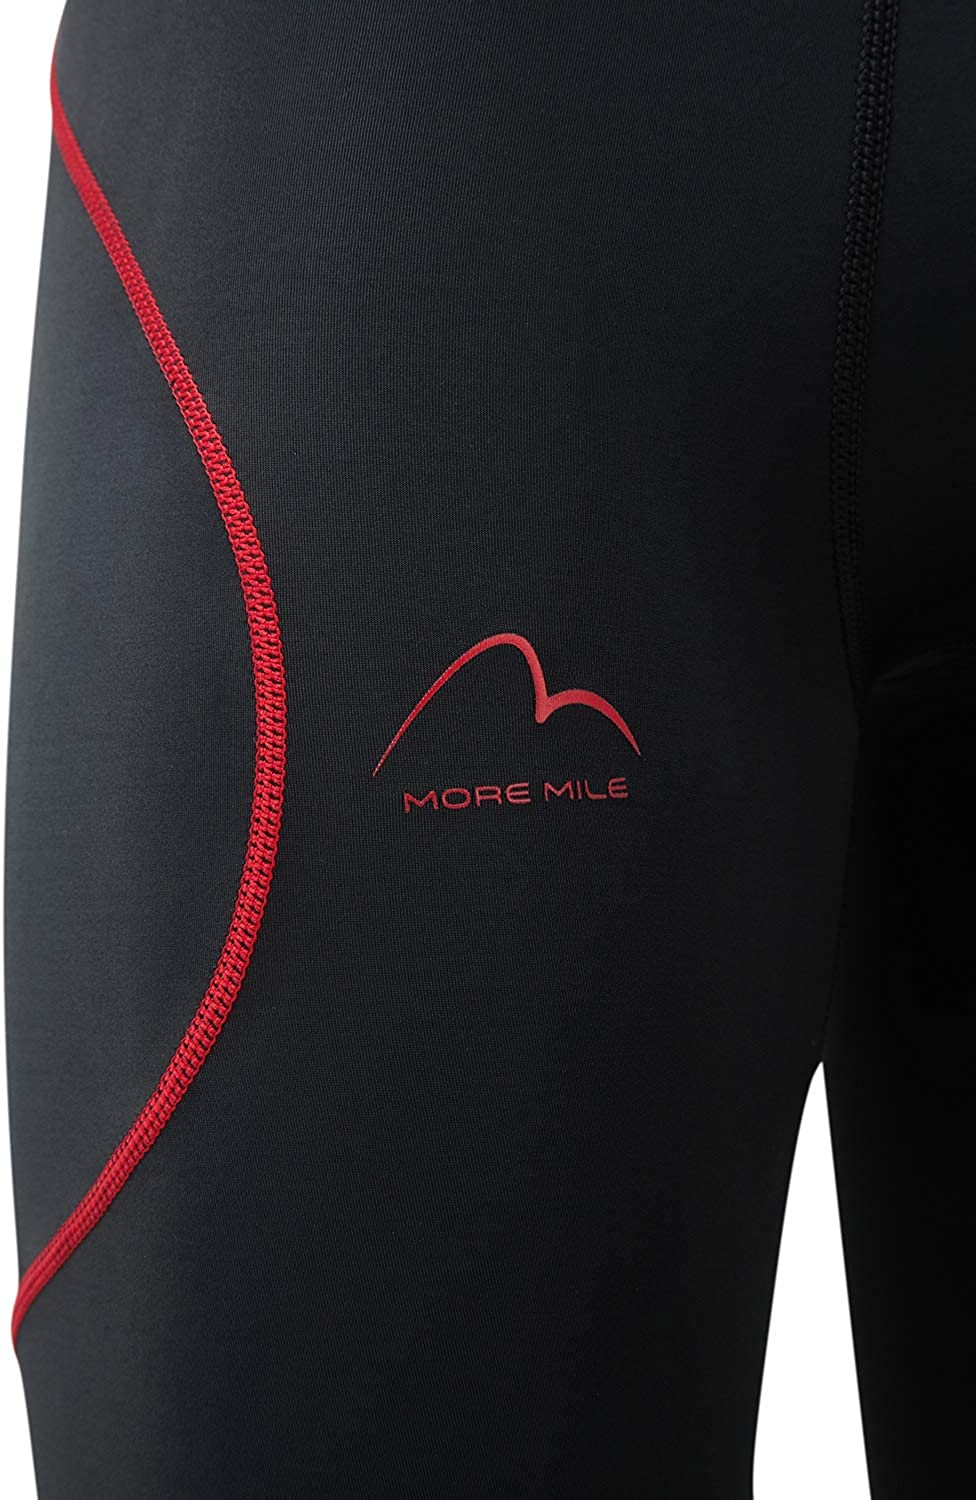 More Mile Mens Compression Running Shorts